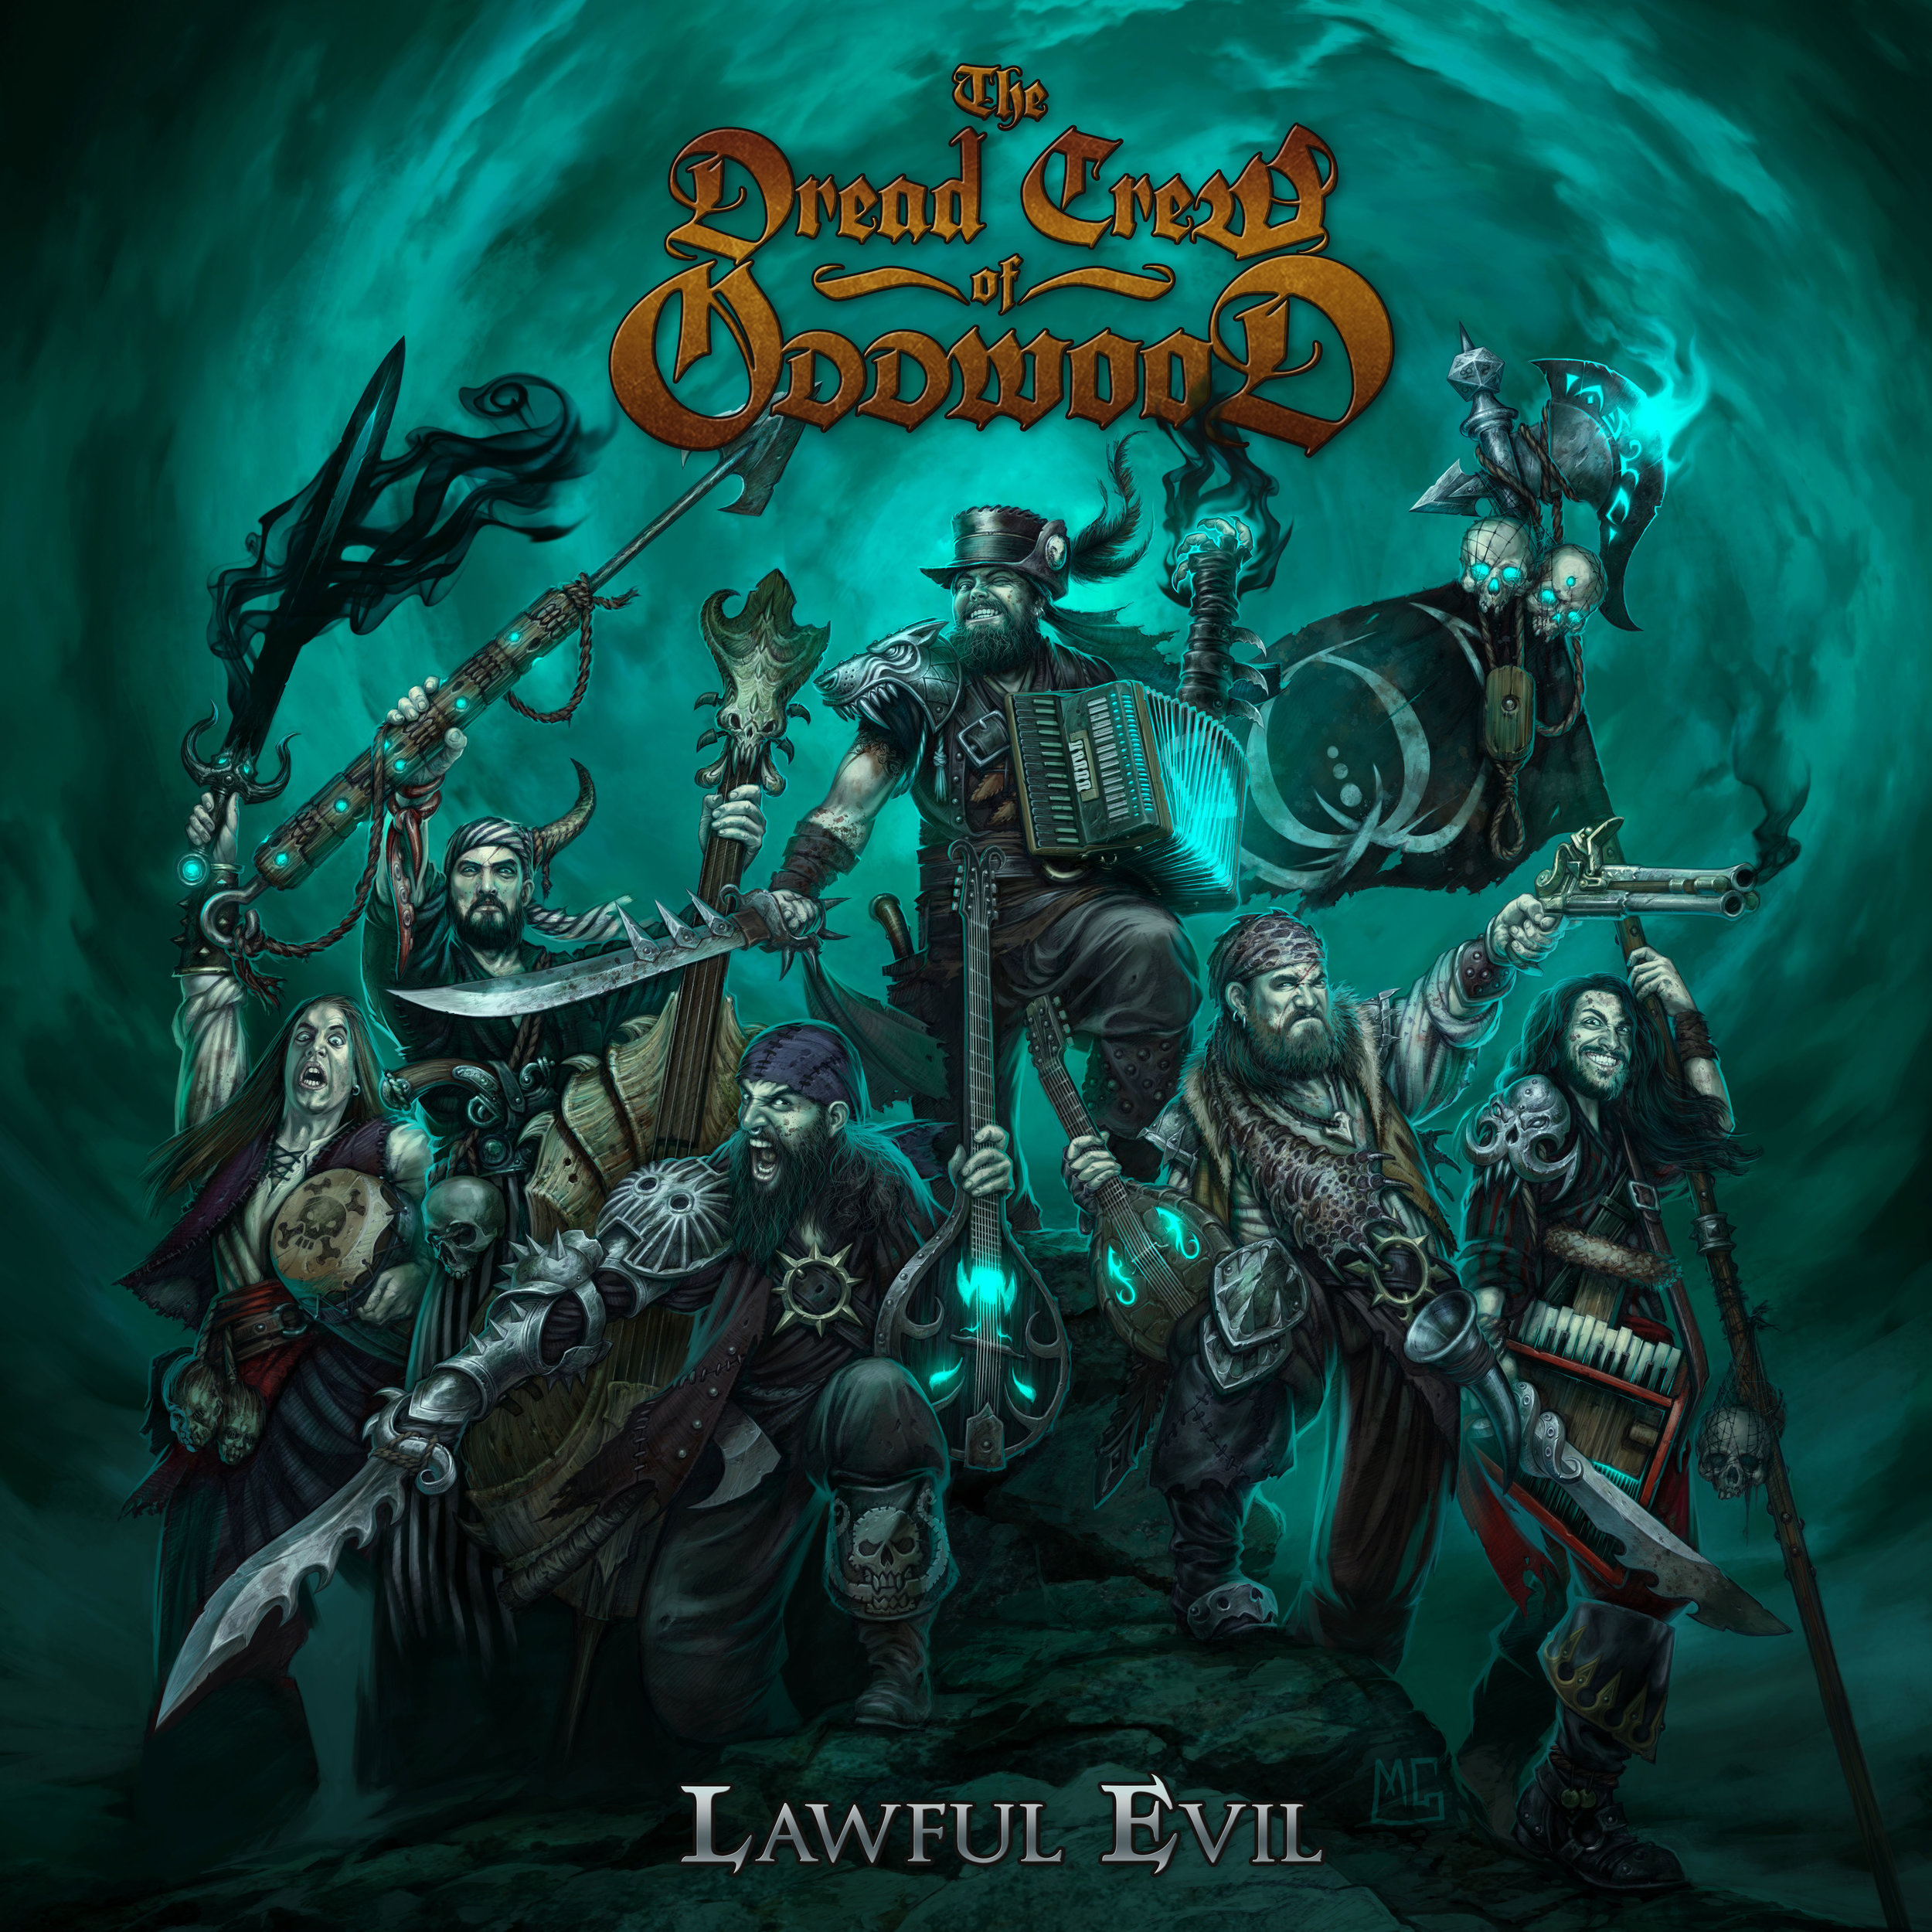 The Dead Crew of Oddwood – Lawful Evil